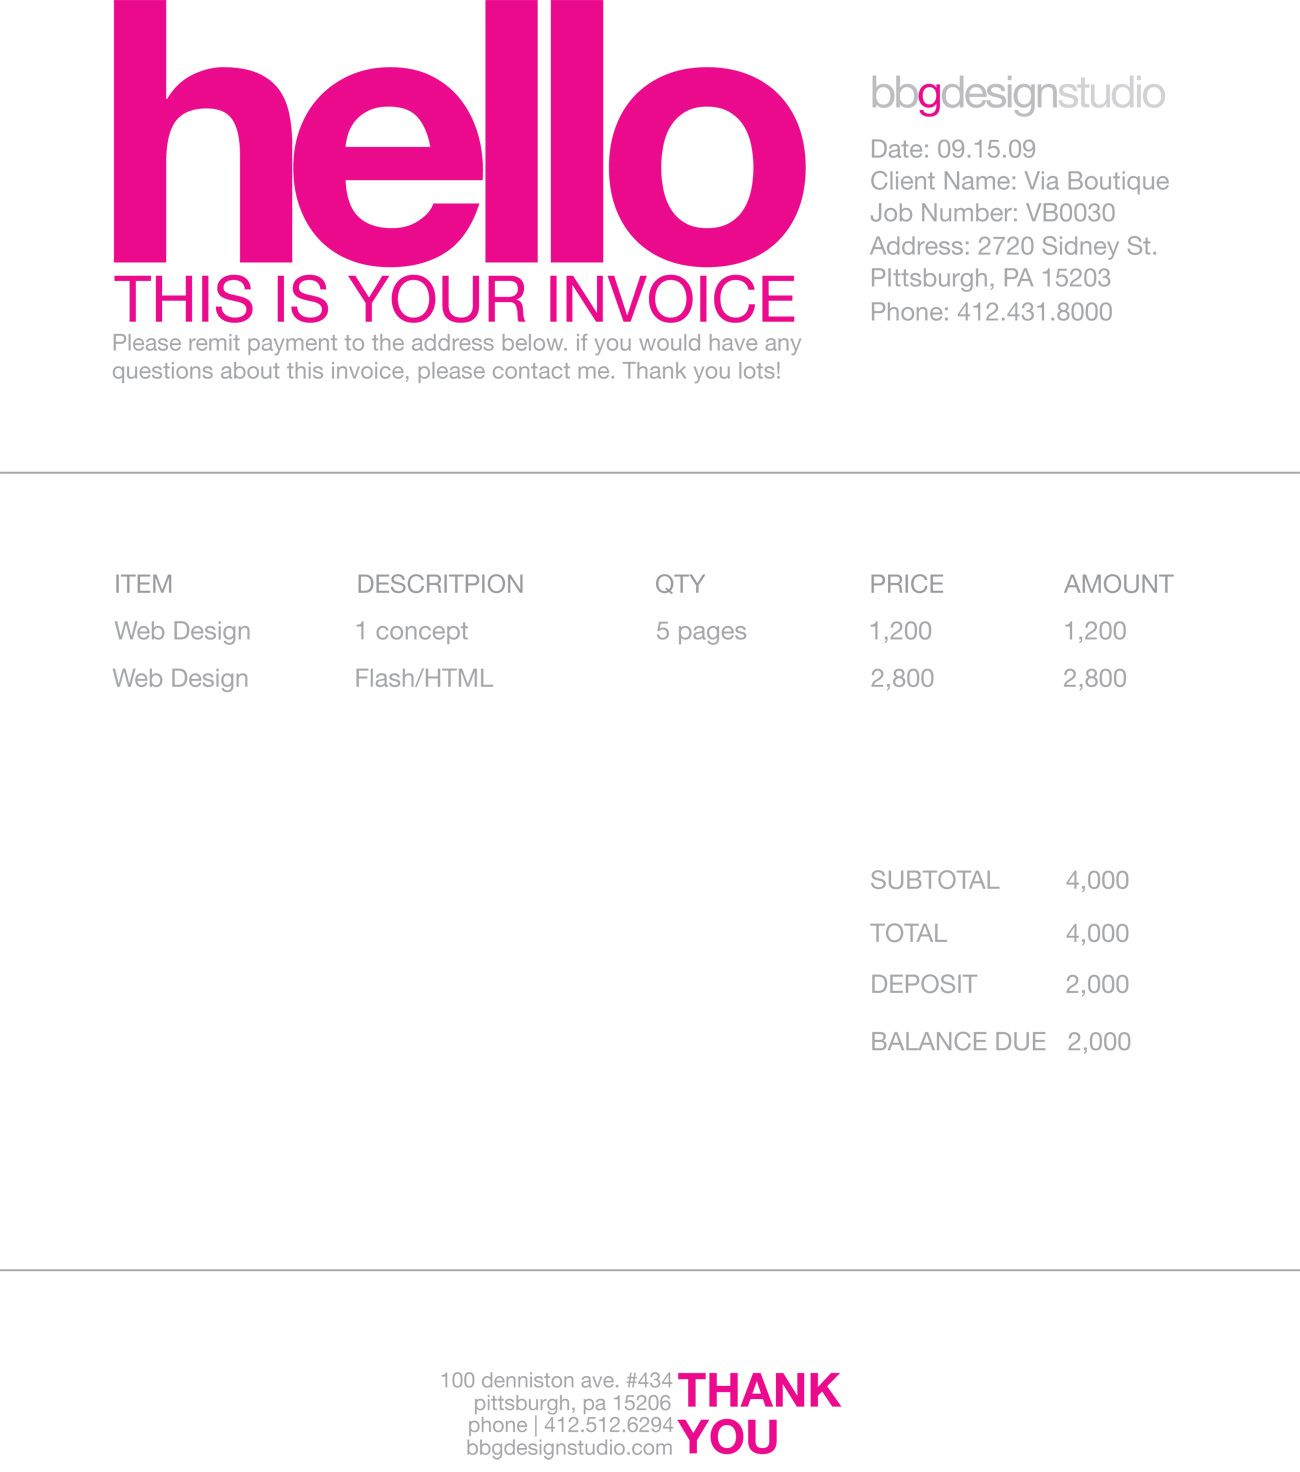 Aninsaneportraitus  Prepossessing  Images About Invoice Design On Pinterest With Outstanding Invoice Template For Consulting Services Besides Cars Invoice Furthermore Free Printable Invoice Maker With Delightful Einvoices Also Quickbooks Email Invoice In Addition Invoice Loan And Definition Of Invoice In Accounting As Well As Blank Invoices Free Additionally Invoice Creator Online From Pinterestcom With Aninsaneportraitus  Outstanding  Images About Invoice Design On Pinterest With Delightful Invoice Template For Consulting Services Besides Cars Invoice Furthermore Free Printable Invoice Maker And Prepossessing Einvoices Also Quickbooks Email Invoice In Addition Invoice Loan From Pinterestcom